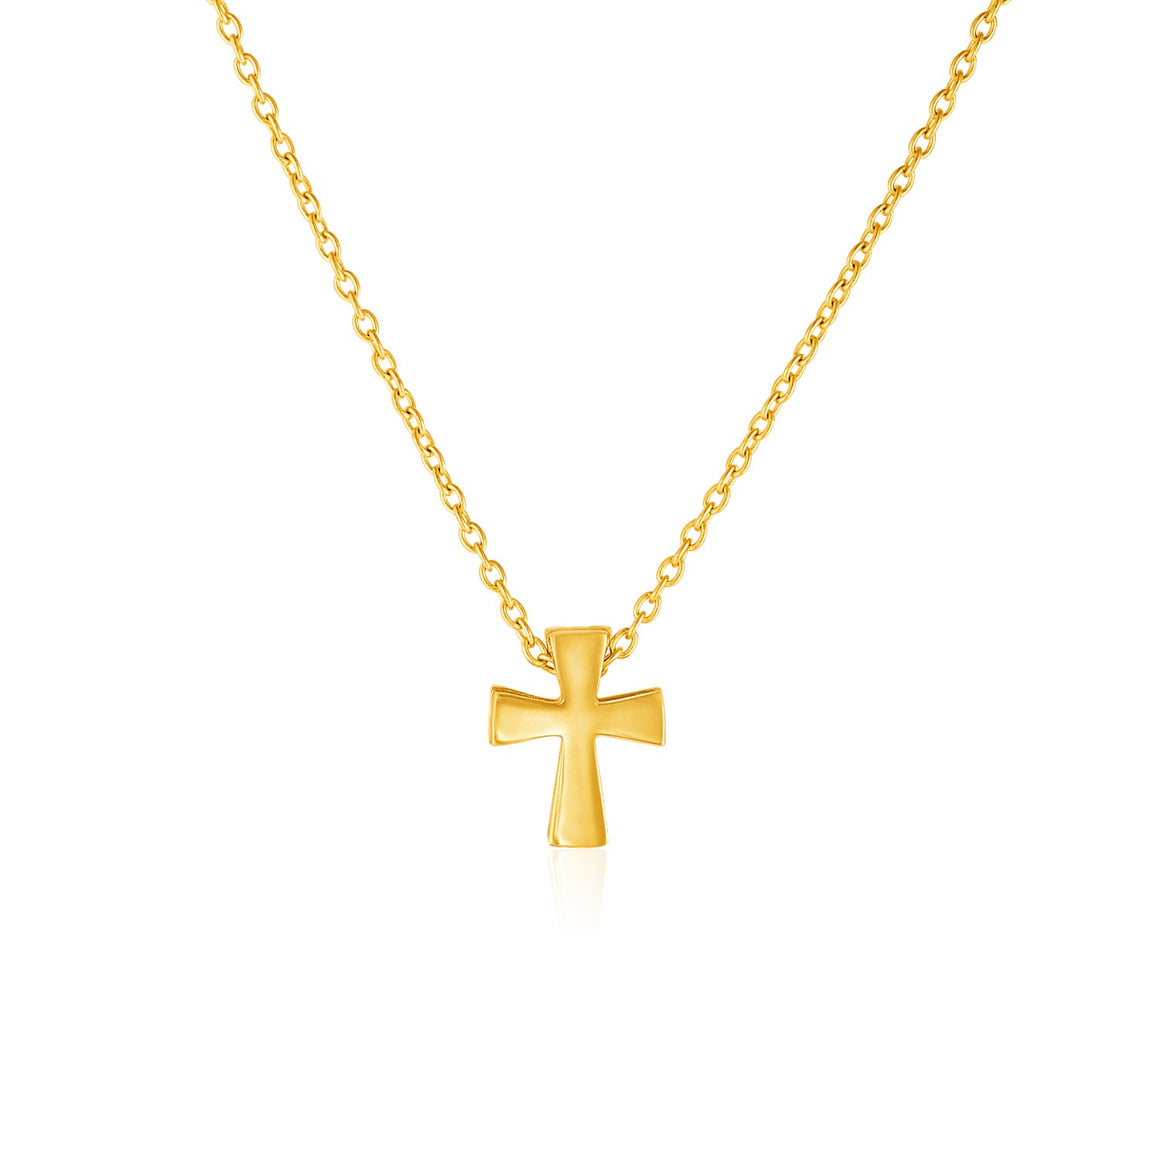 14k Yellow Gold with Cross Pendant